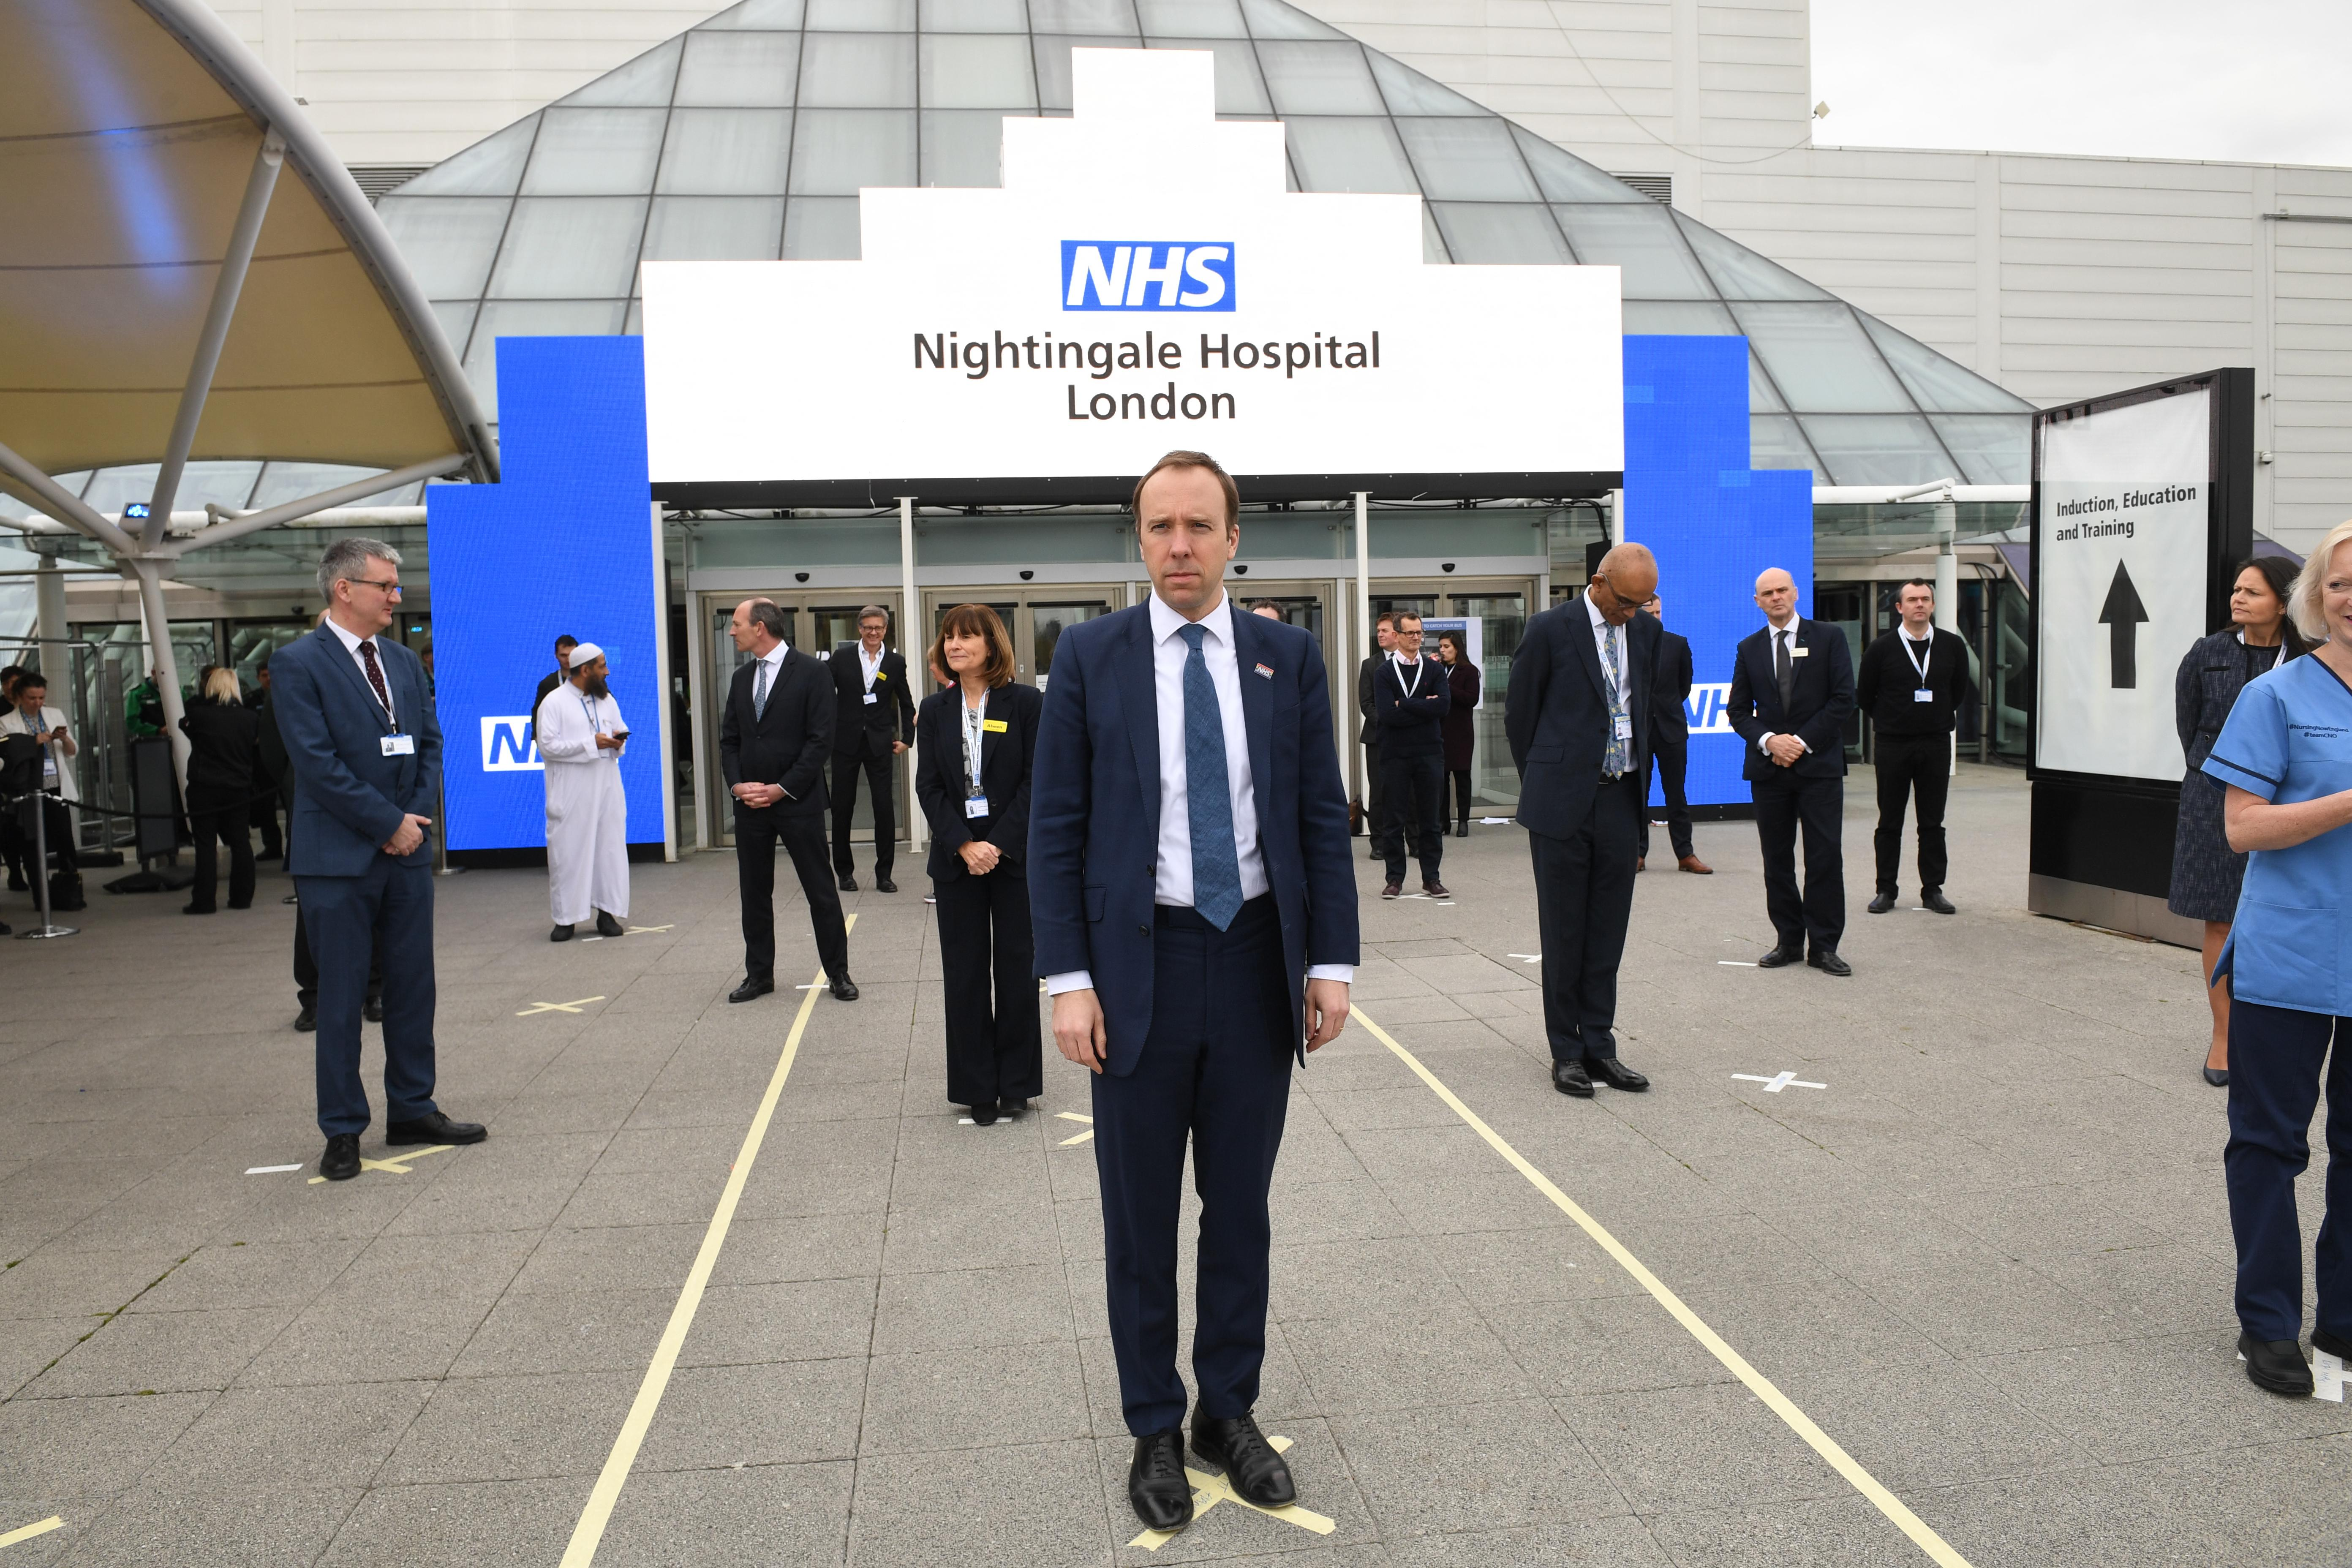 Health Secretary Matt Hancock and NHS staff stand on marks on the ground, put in place to ensure social distancing guidelines are adhered to, at the opening of the NHS Nightingale Hospital at the ExCel centre in London, a temporary hospital with 4000 beds which has been set up for the treatment of Covid-19 patients.